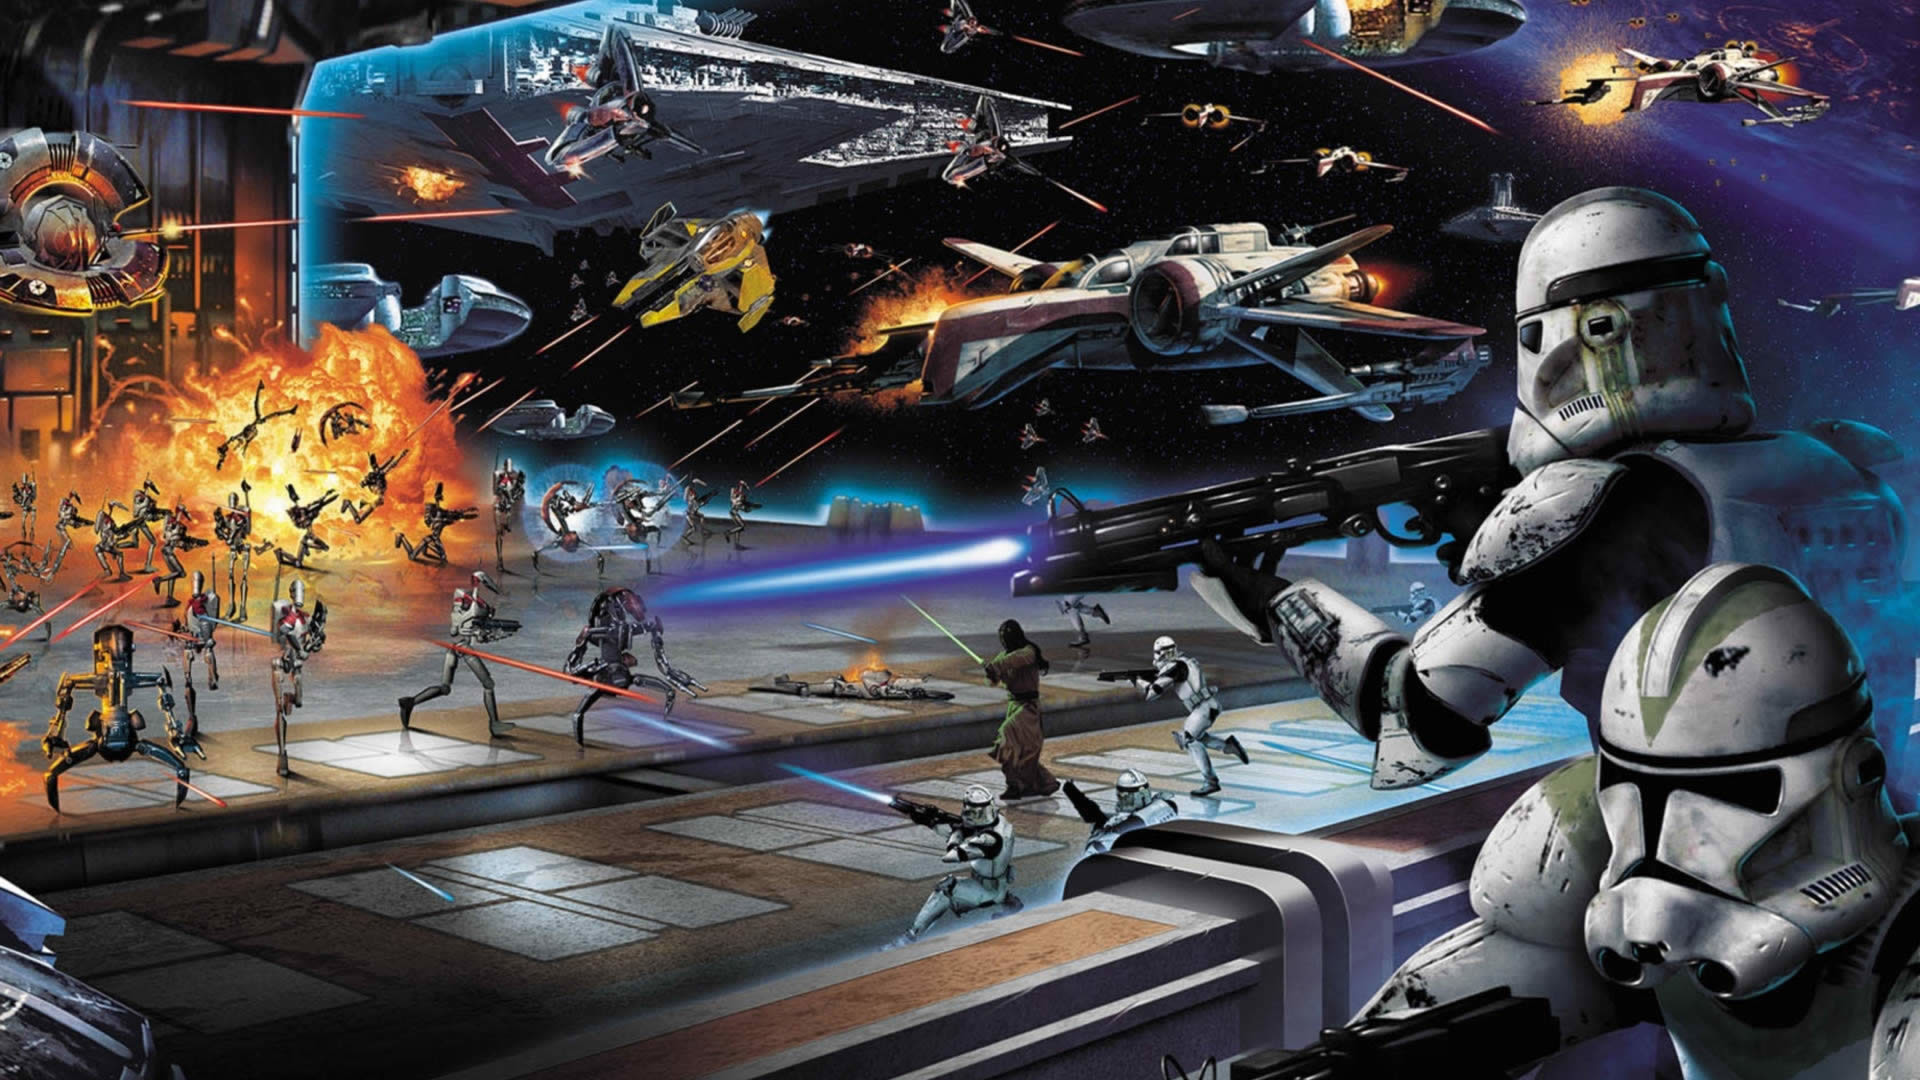 star wars painting images | 40 Epic Star Wars Wallpapers